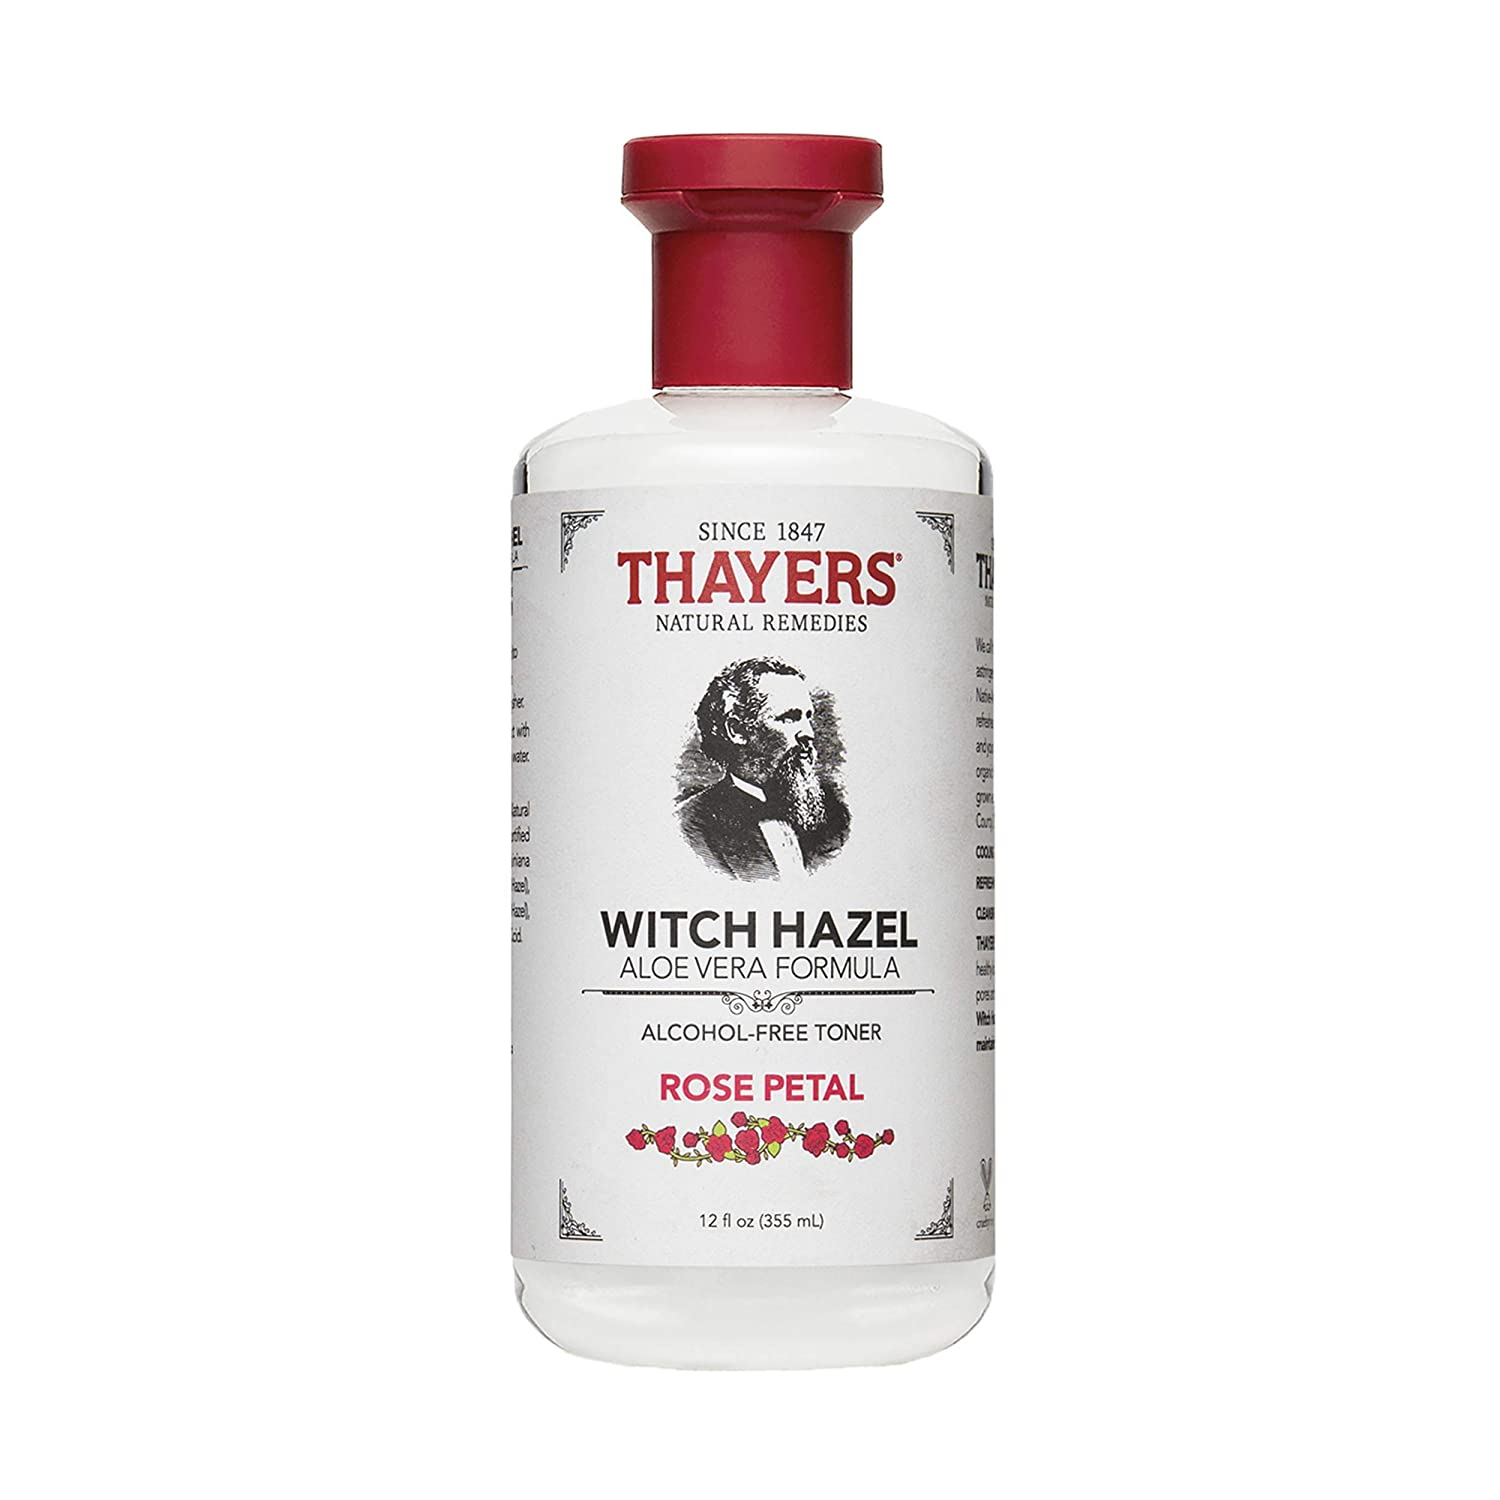 Thayers Alcohol-Free Rose Petal Witch Hazel Toner - 12oz (355ml) Thayer' s 7003